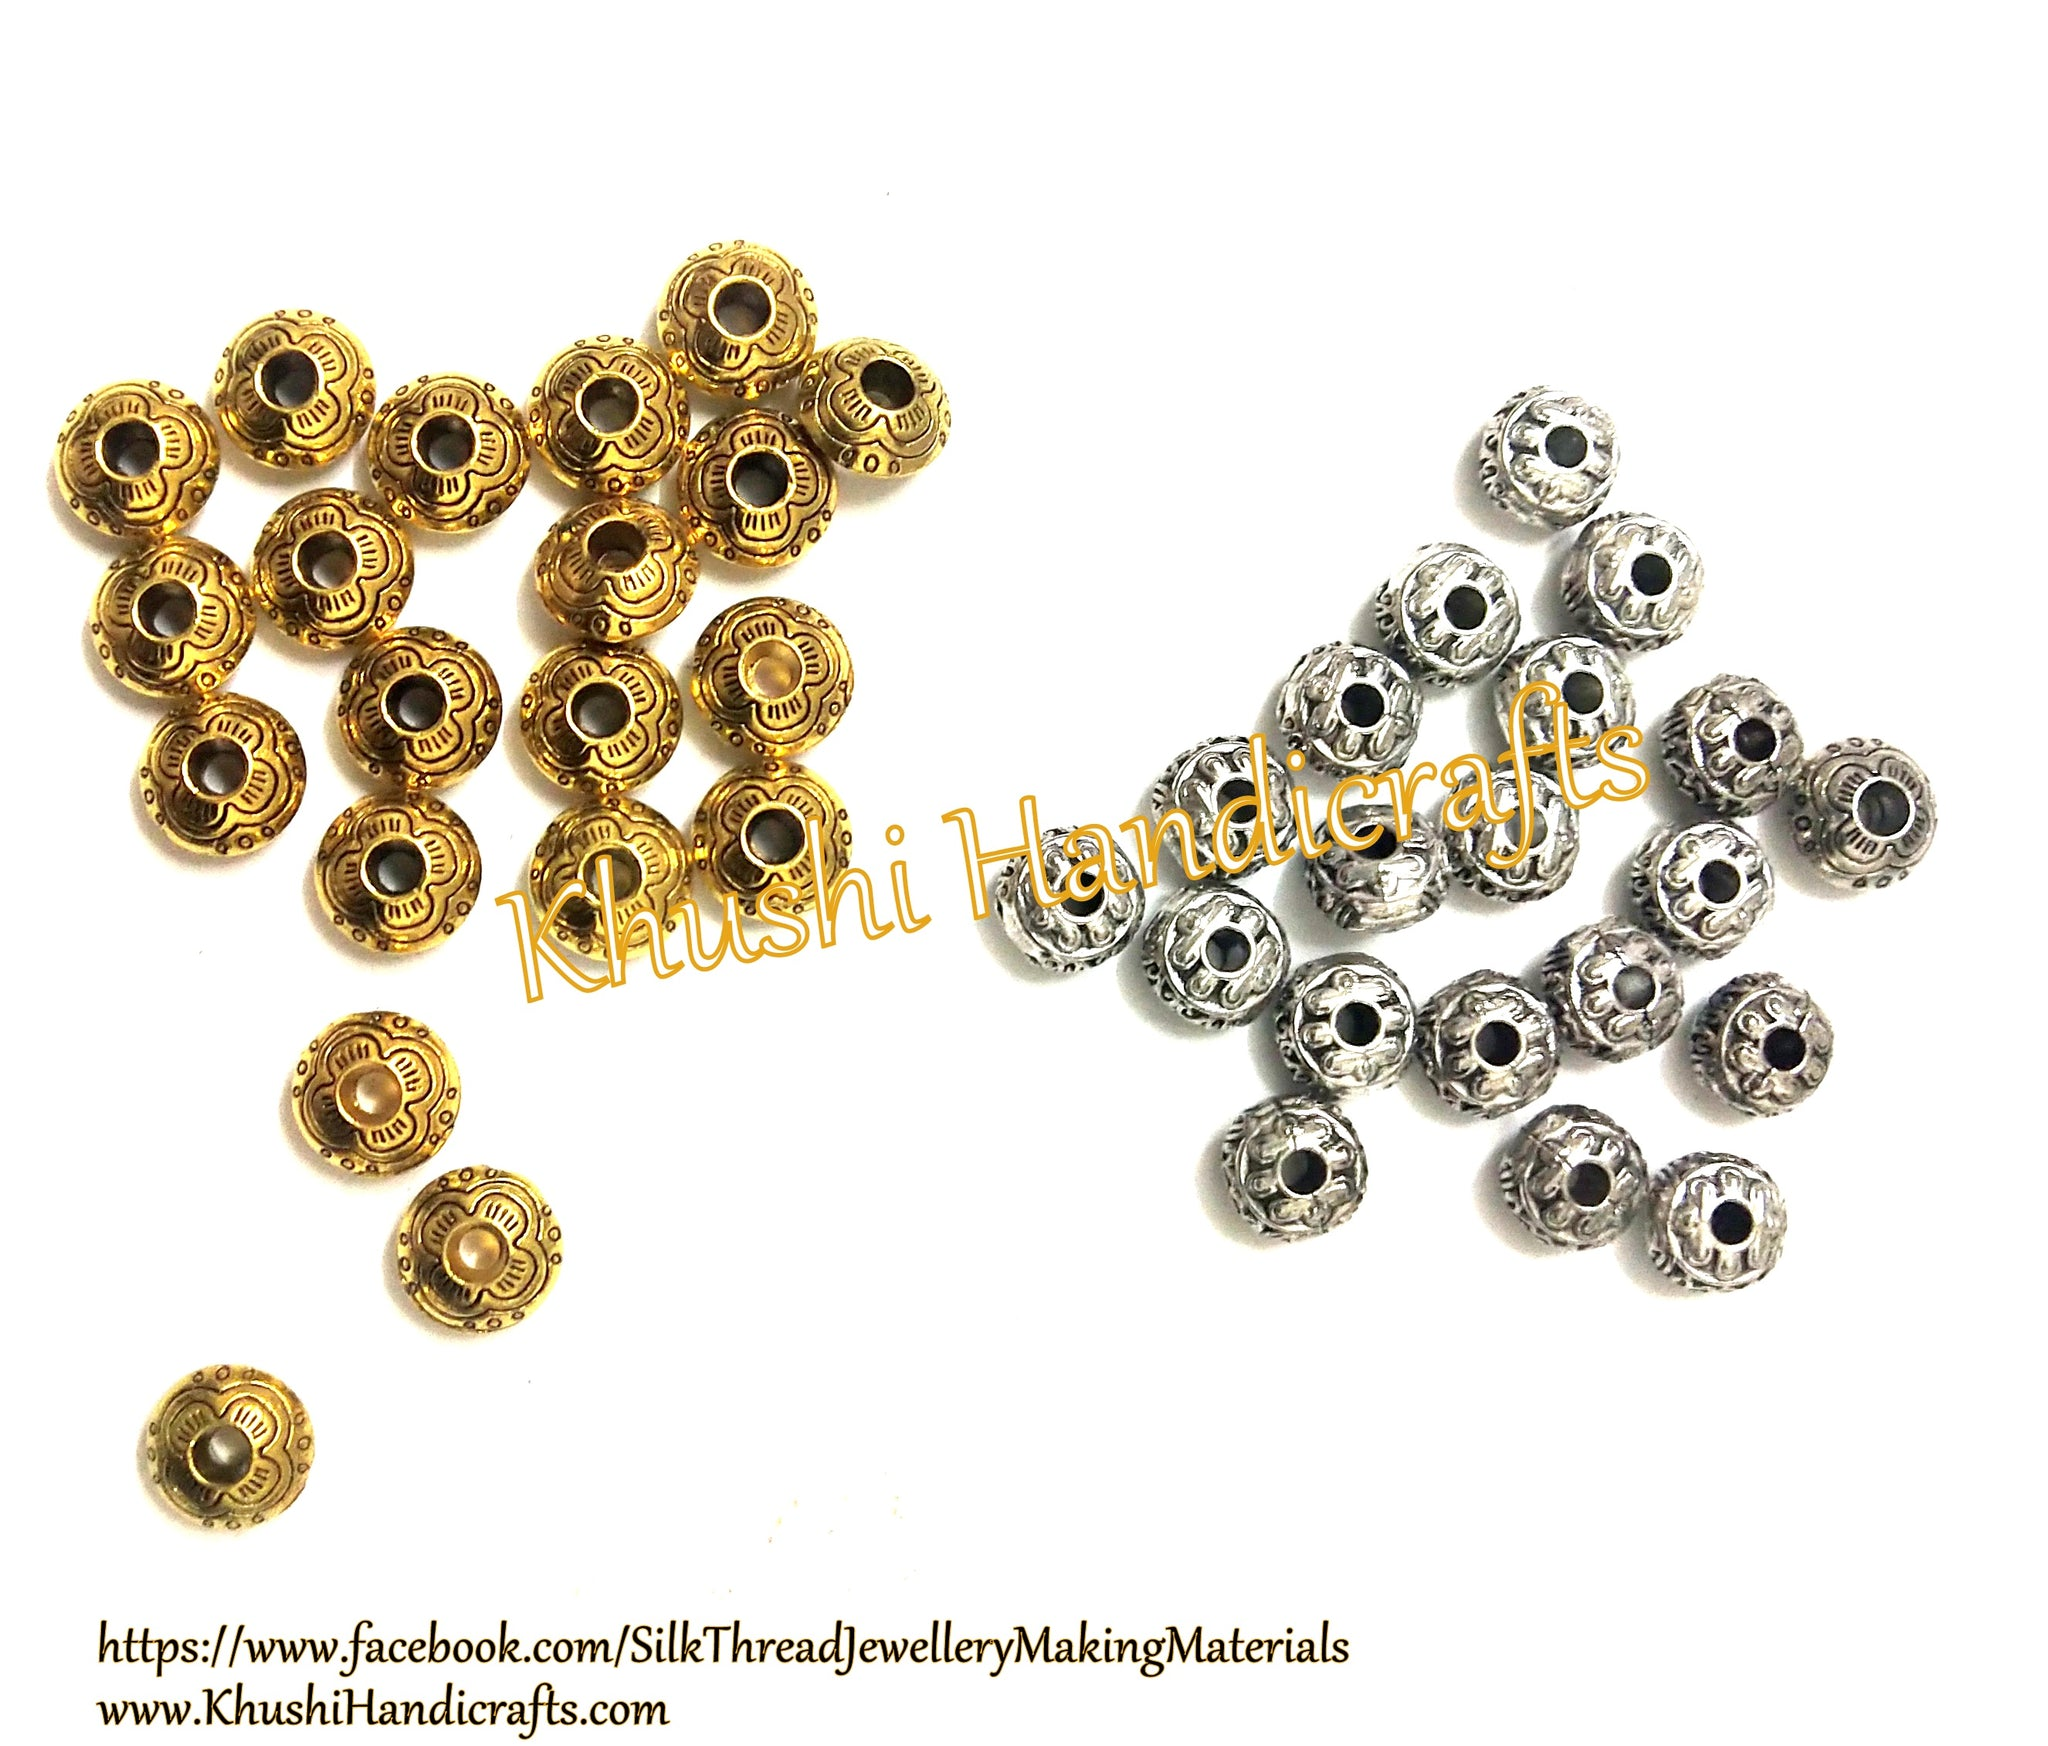 Antique Gold  silver 10mm Round metal Designer spacer Beads. Pack of 40 pieces!